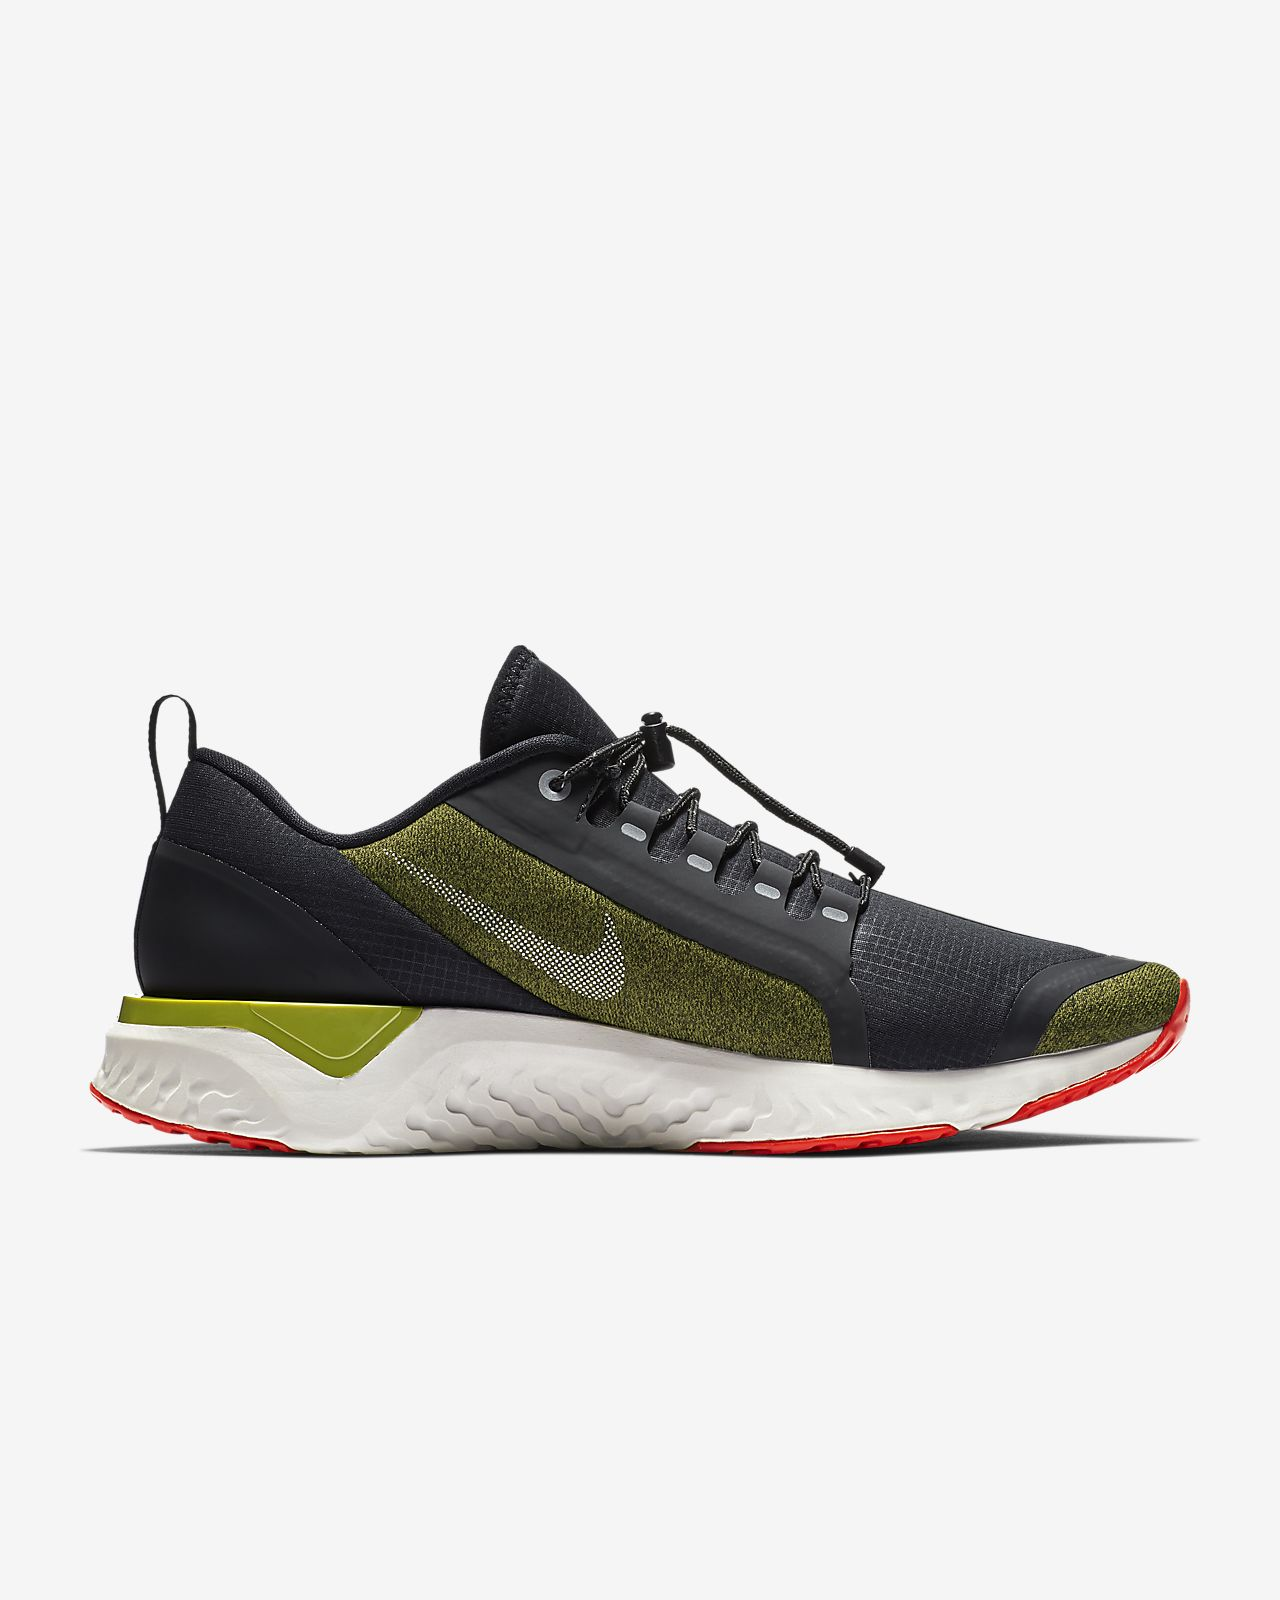 887812ec3582 ... Chaussure de running Nike Odyssey React Shield Water-Repellent pour  Homme